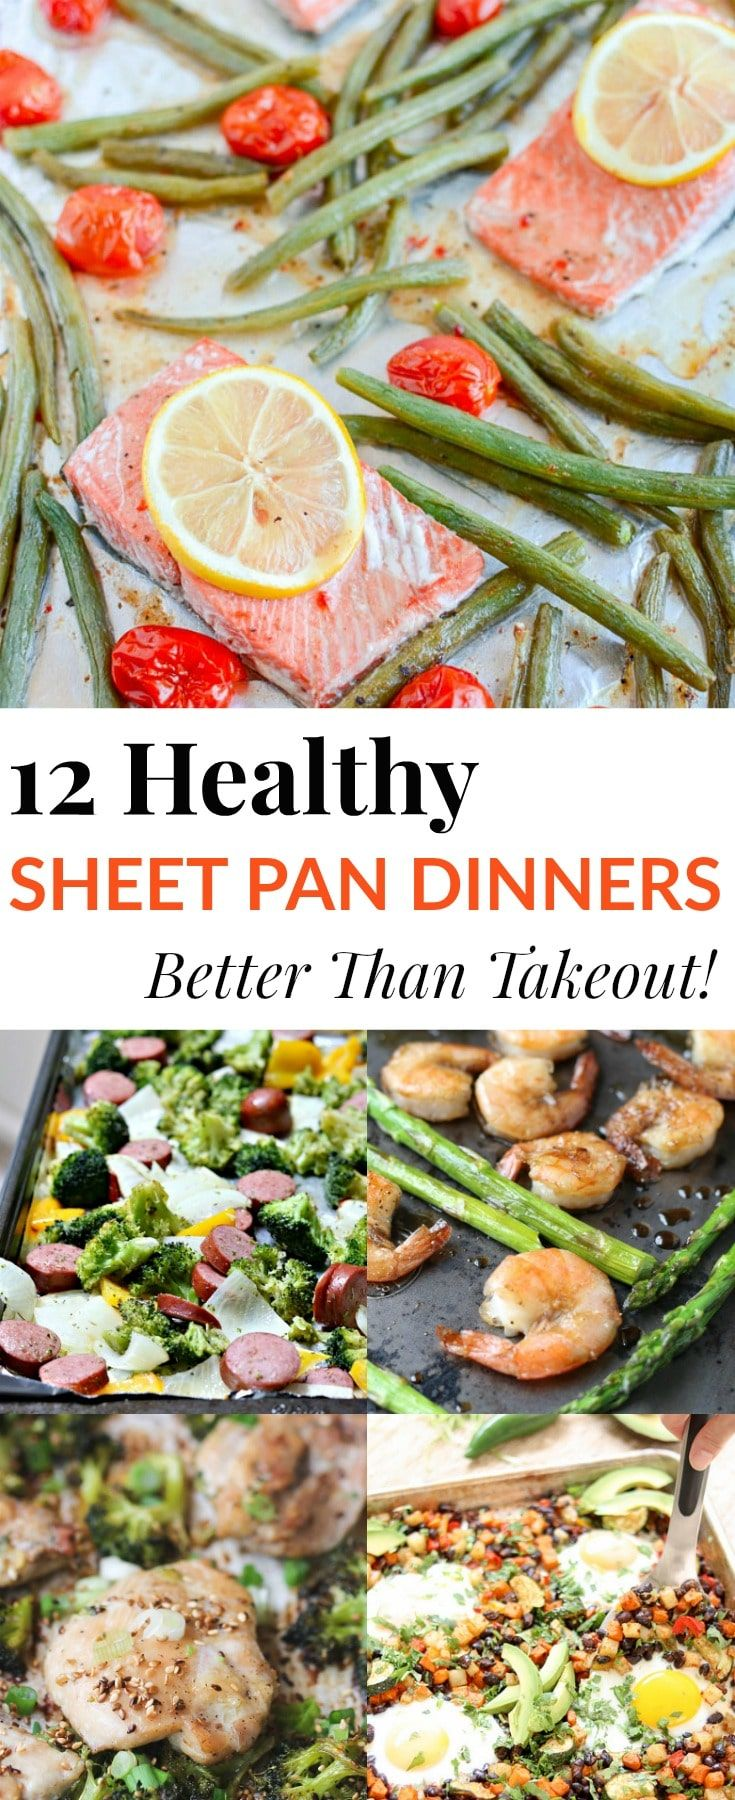 Better than takeout! These healthy sheet pan dinne…